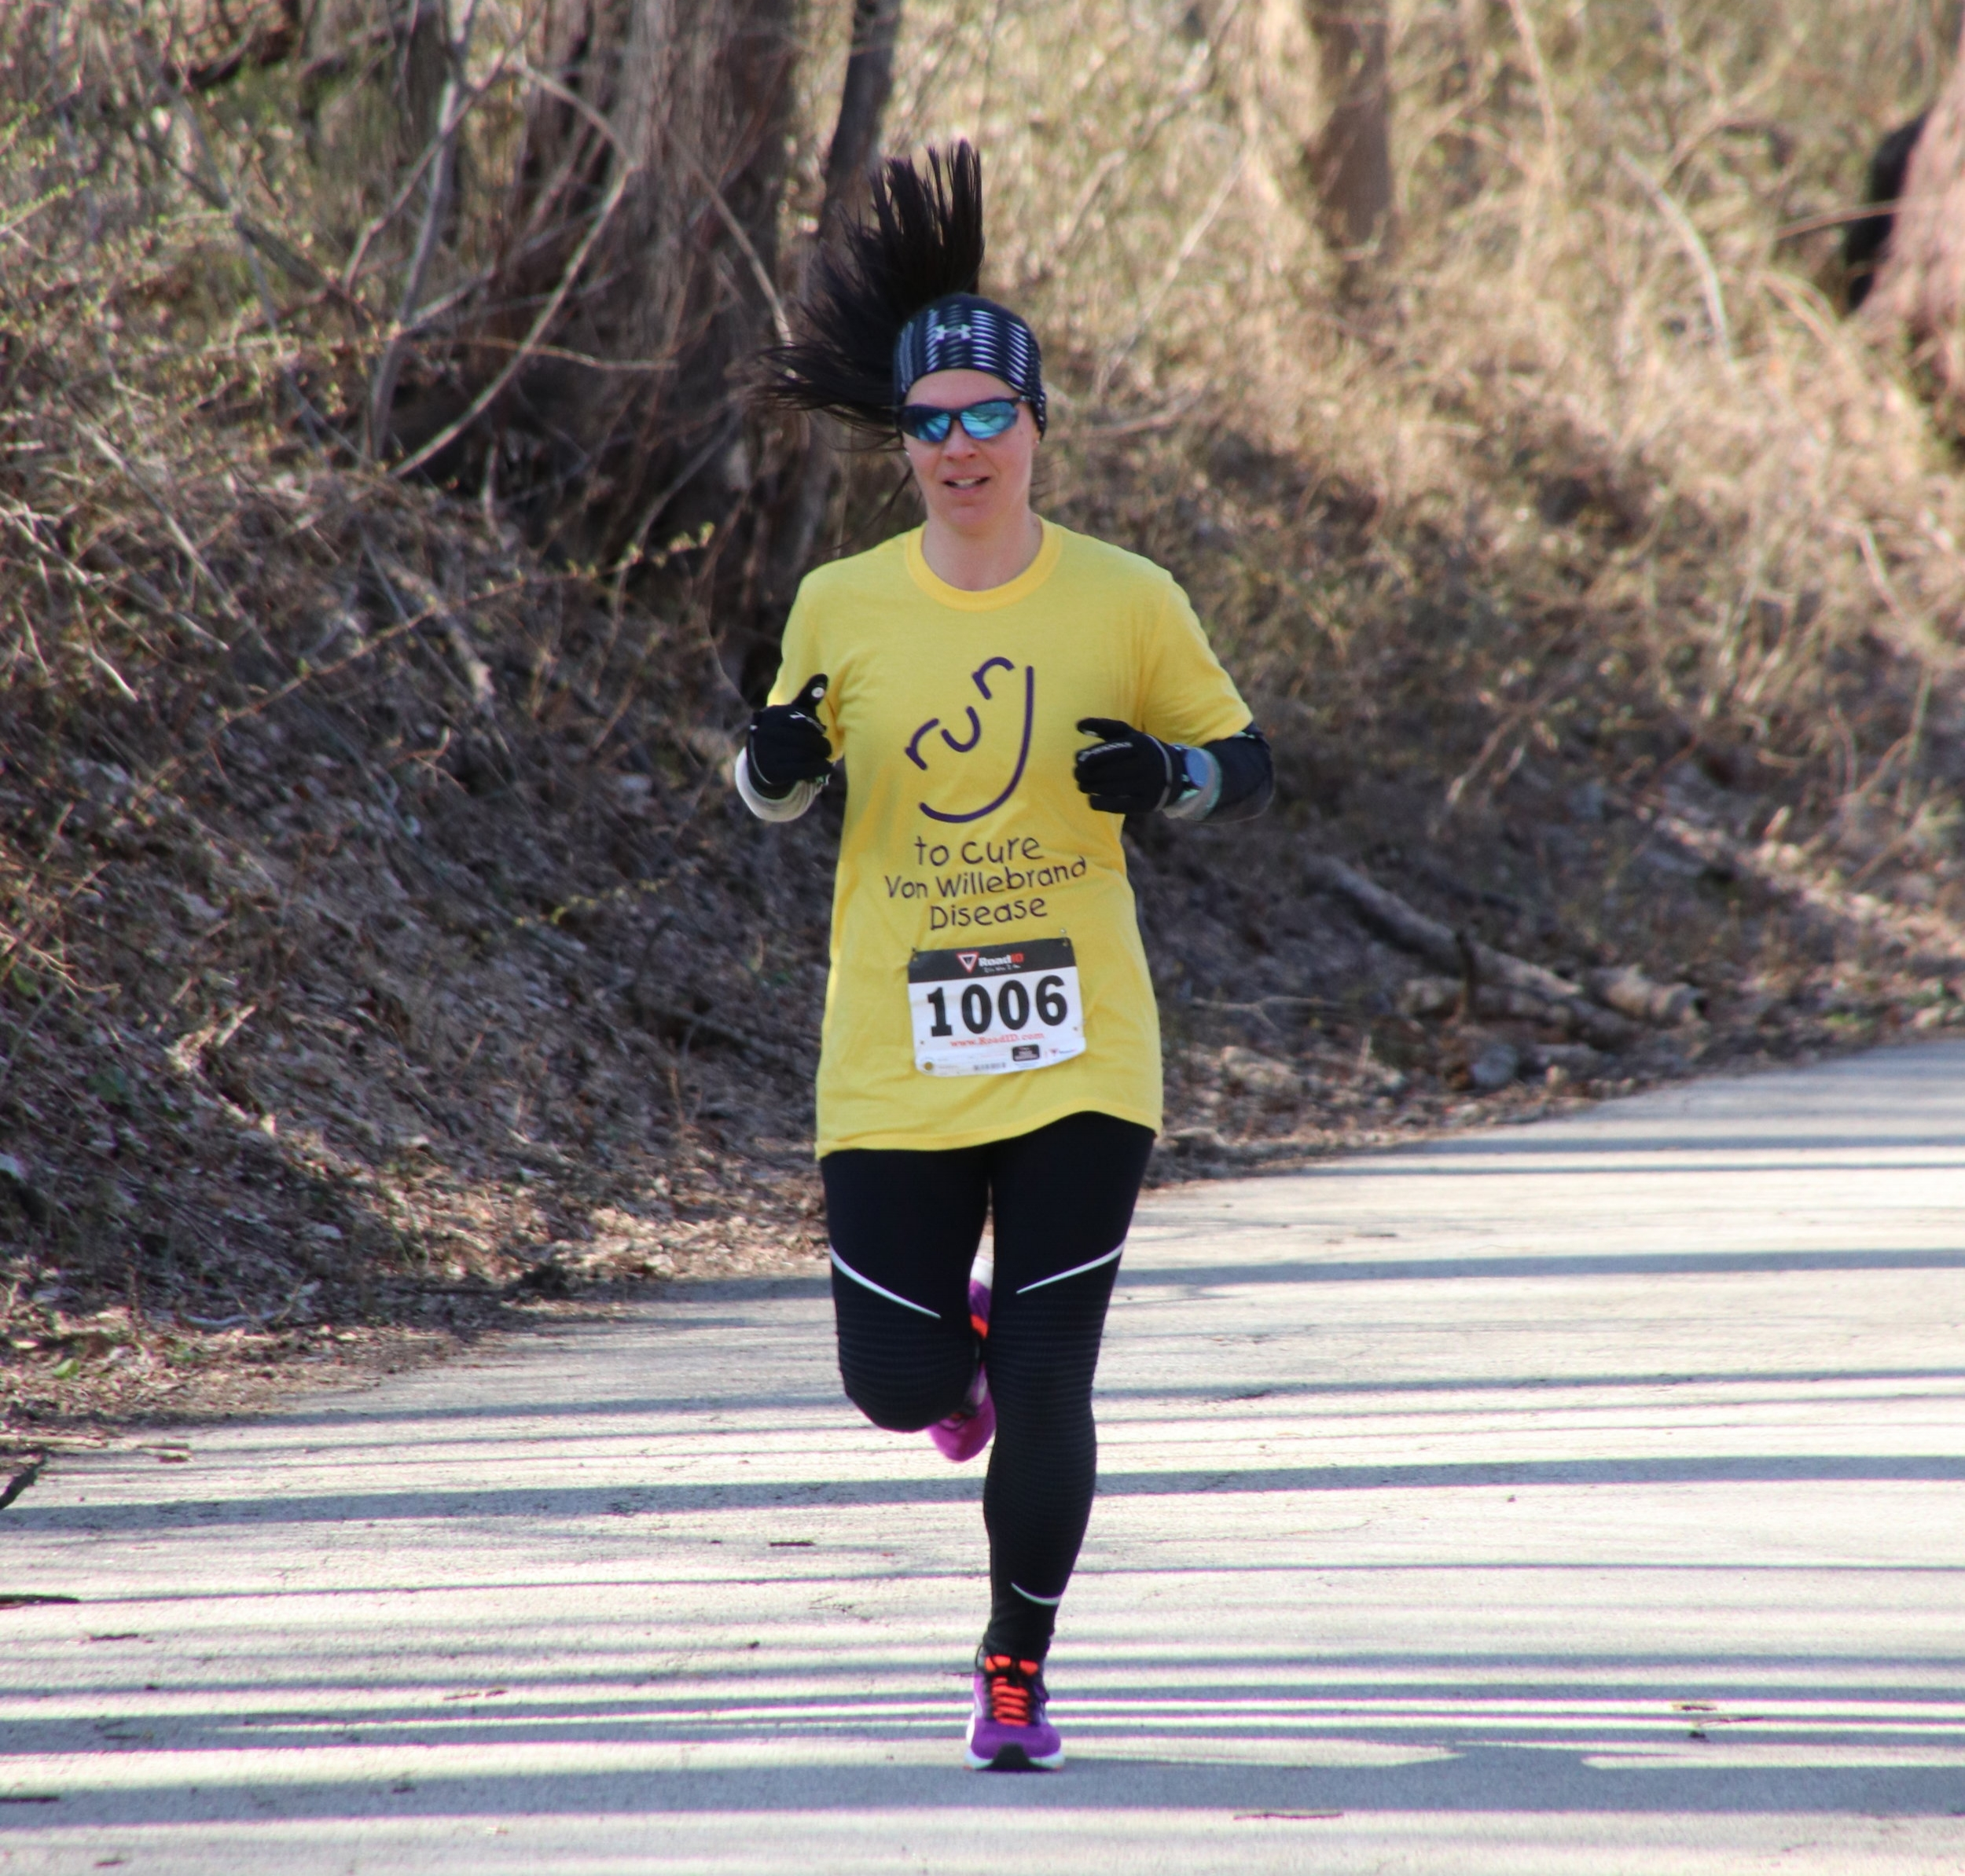 running to cure bleeding disorders